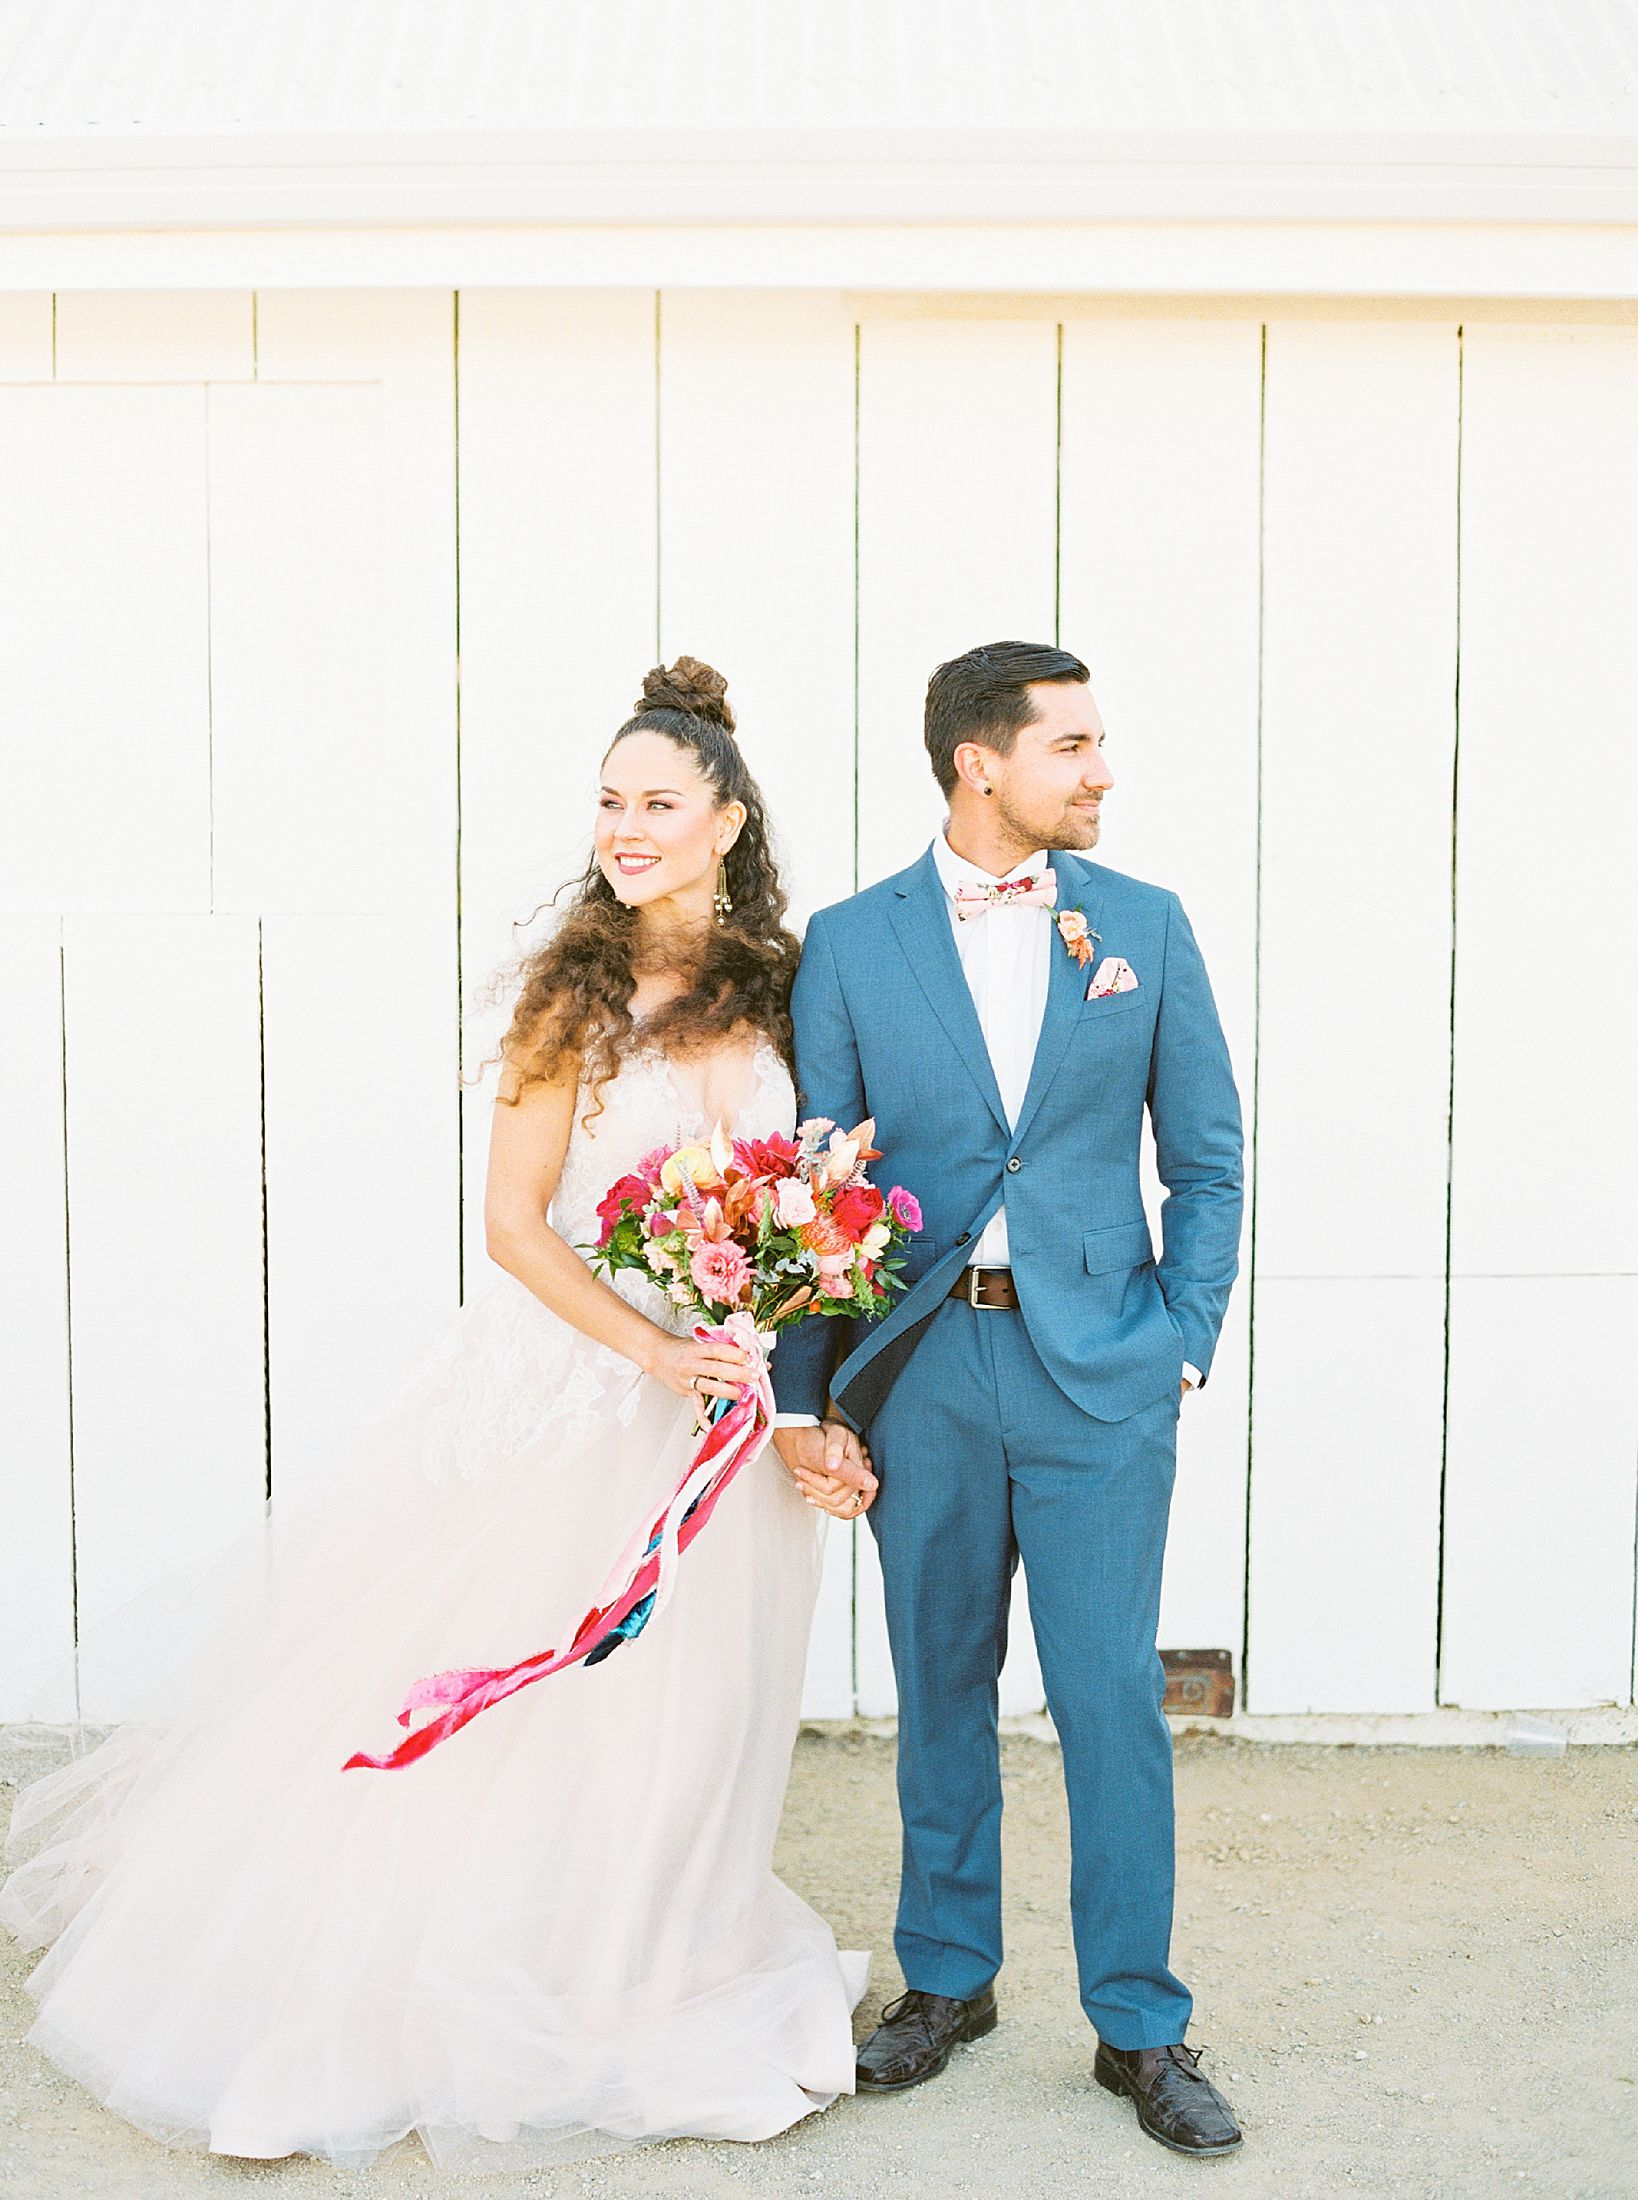 White Barn Edna Valley Wedding Inspiration - San Luis Obispo Wedding - Featured on Green Wedding Shoes - Ashley Baumgartner - FM Events SLO - SLO Wedding Photographer_0012.jpg